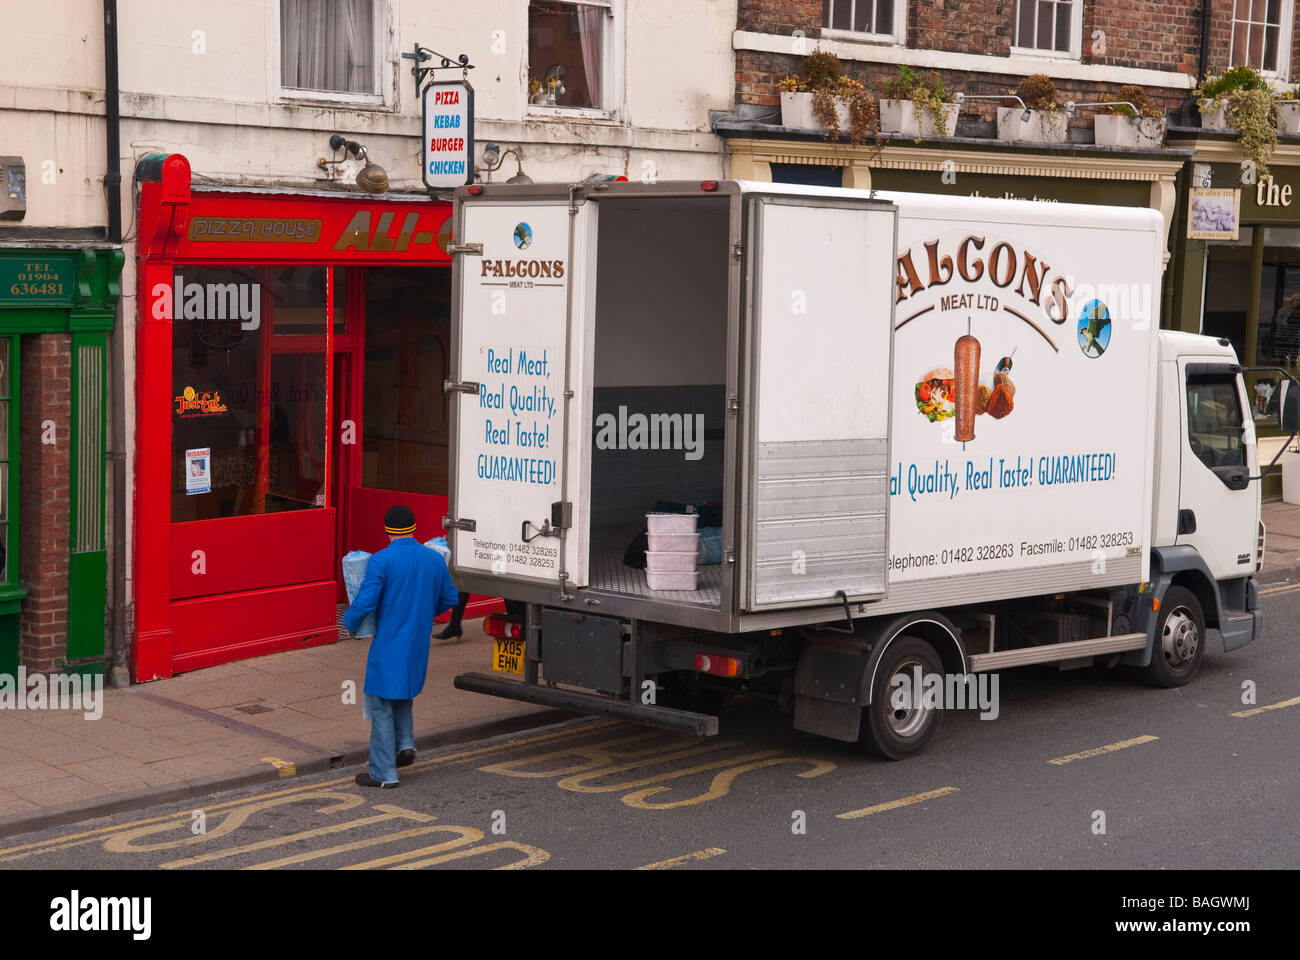 11295588d2 Meat Delivery Uk Stock Photos   Meat Delivery Uk Stock Images - Alamy